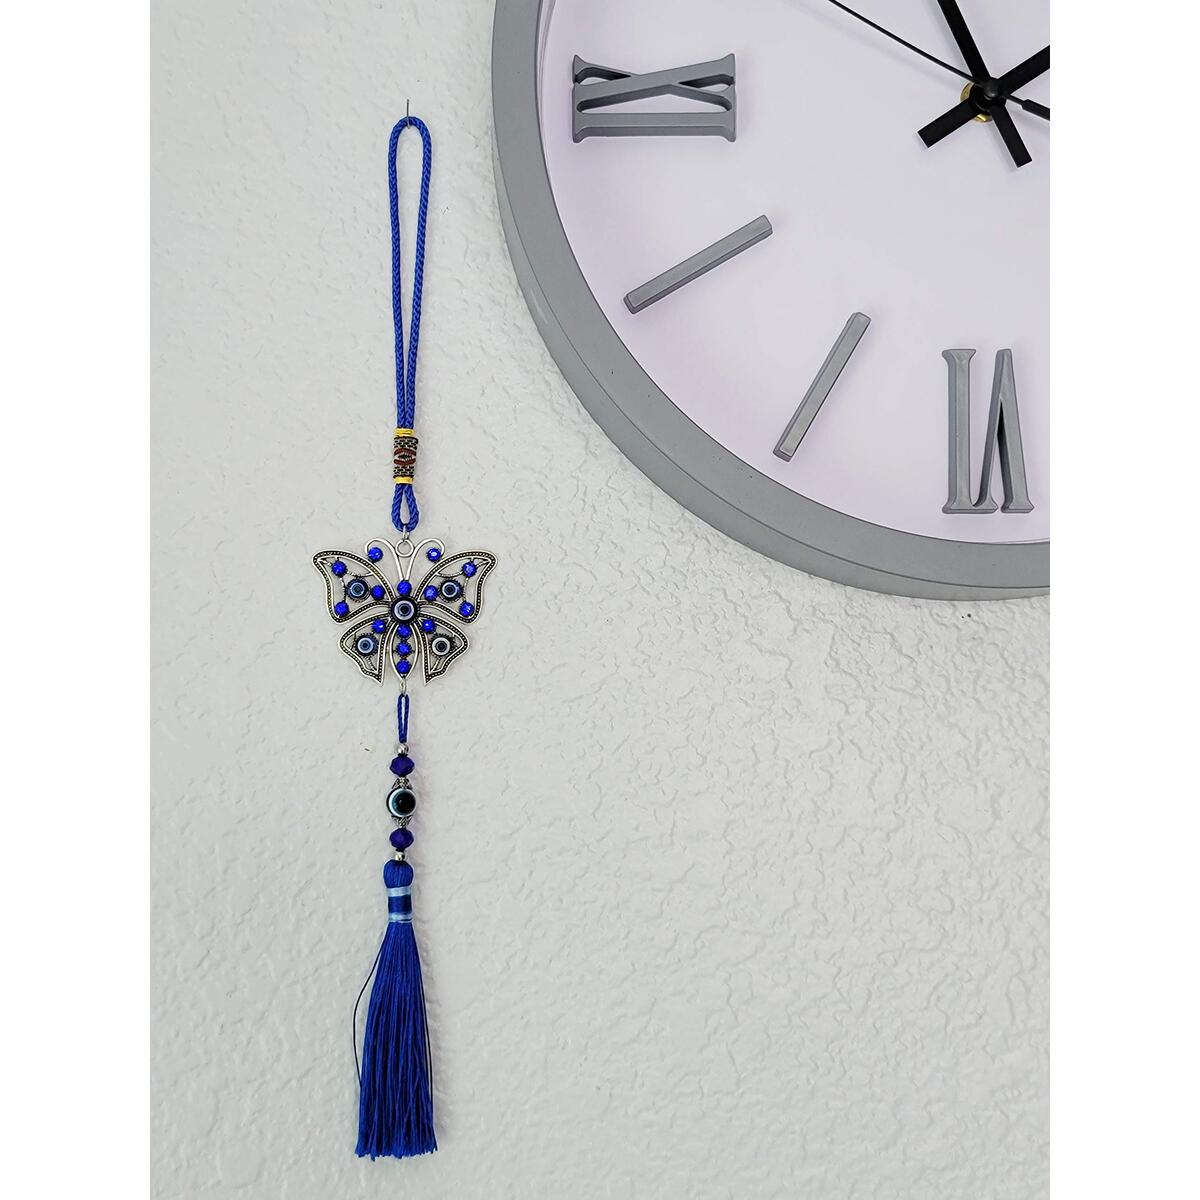 Luckboostium Evil Eye Butterfly Charm Pendant For Good Luck And Protection, Comes With Traditional Blue And White Colors With Matching Tassels And Durable Cord For Hanging In Cars Or On Walls And Bags